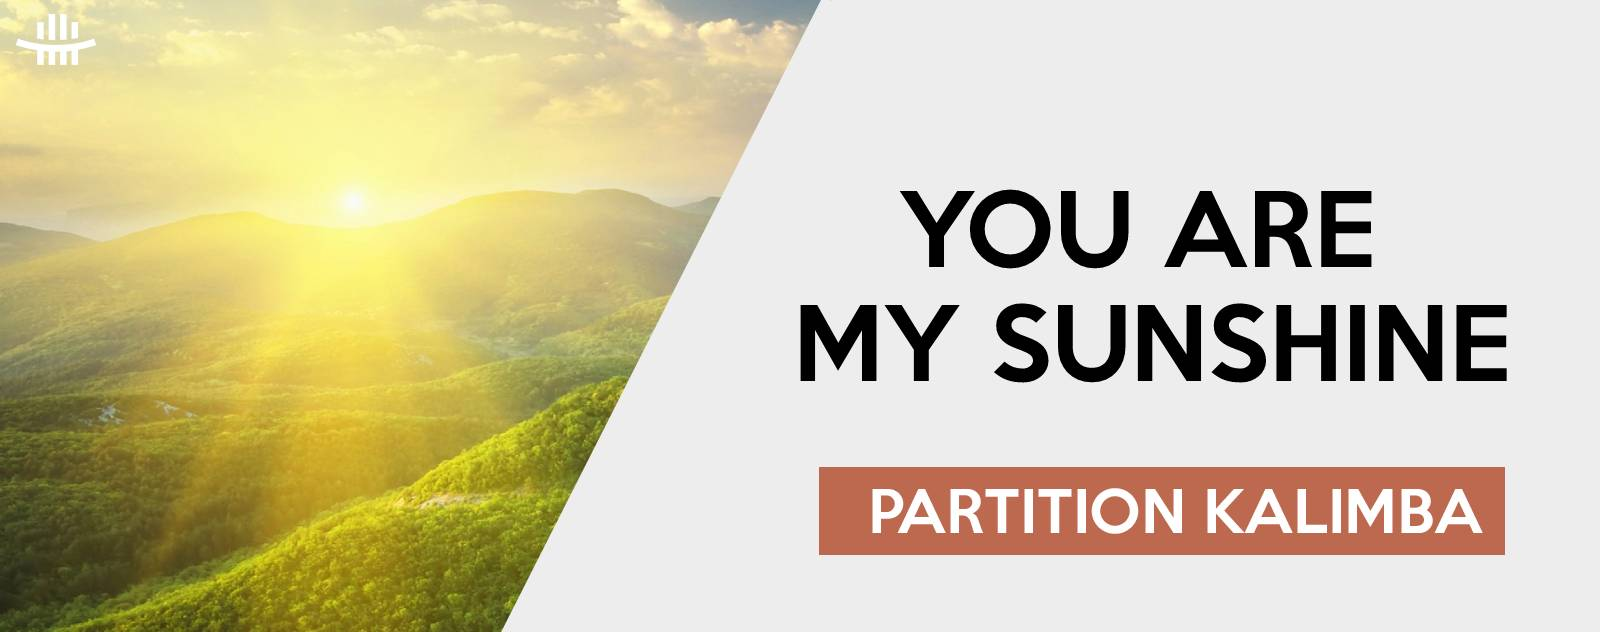 You are my sunshine | Partition kalimba